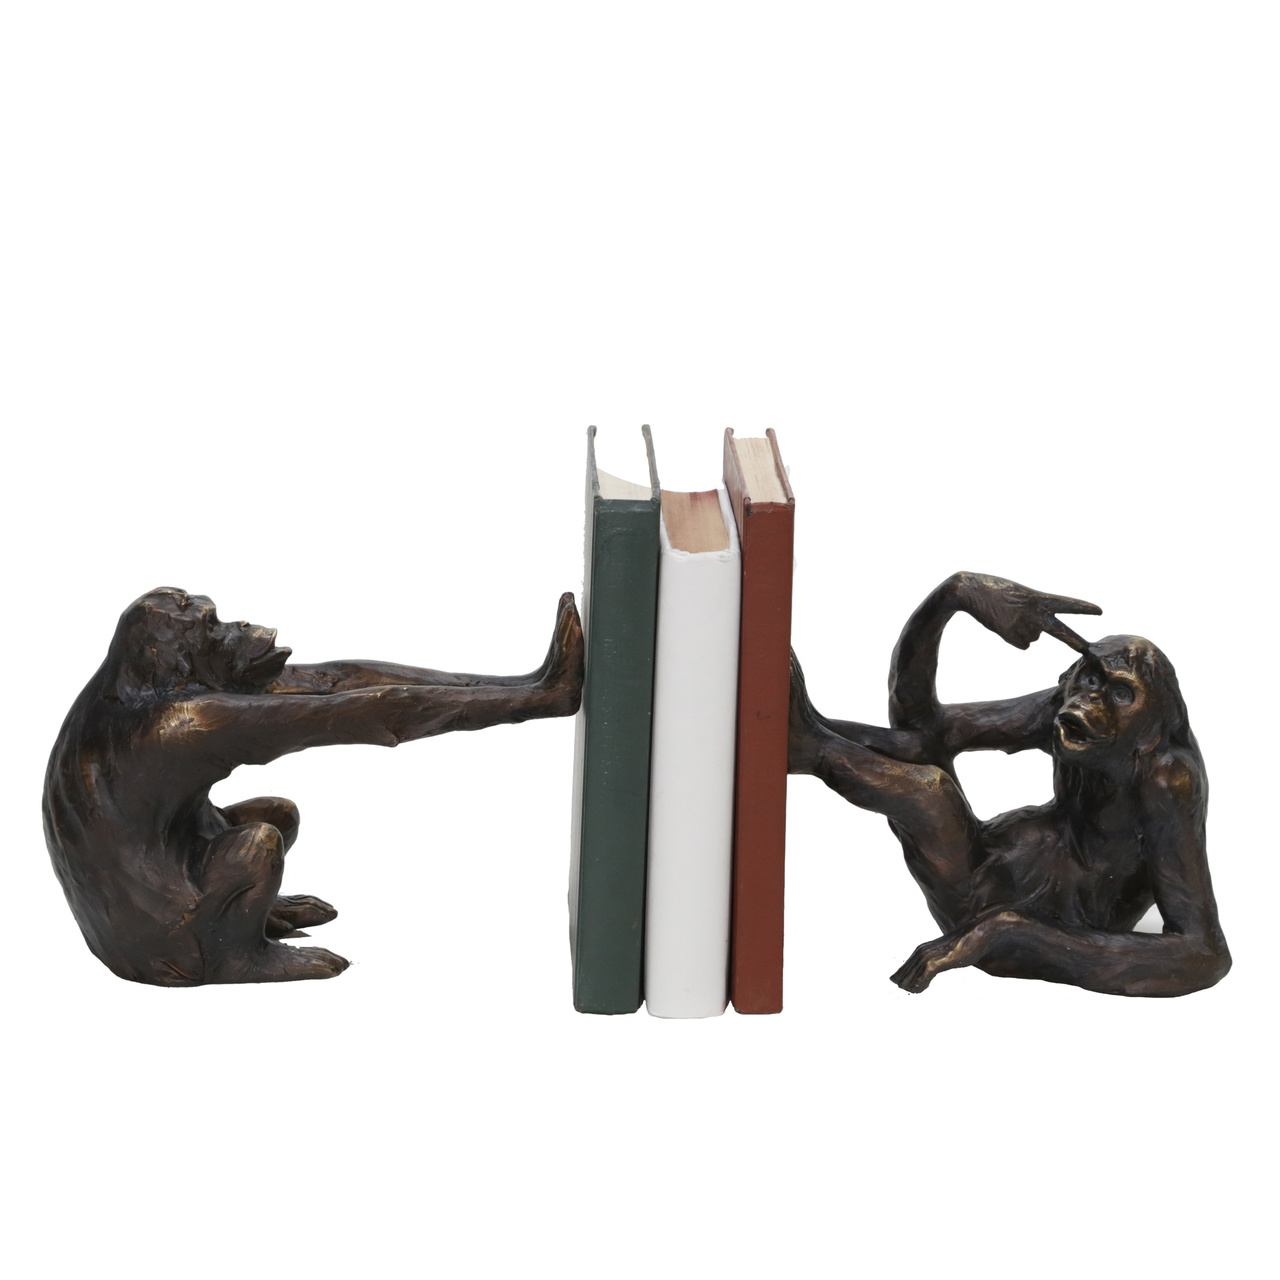 Silly Monkeys Bookends